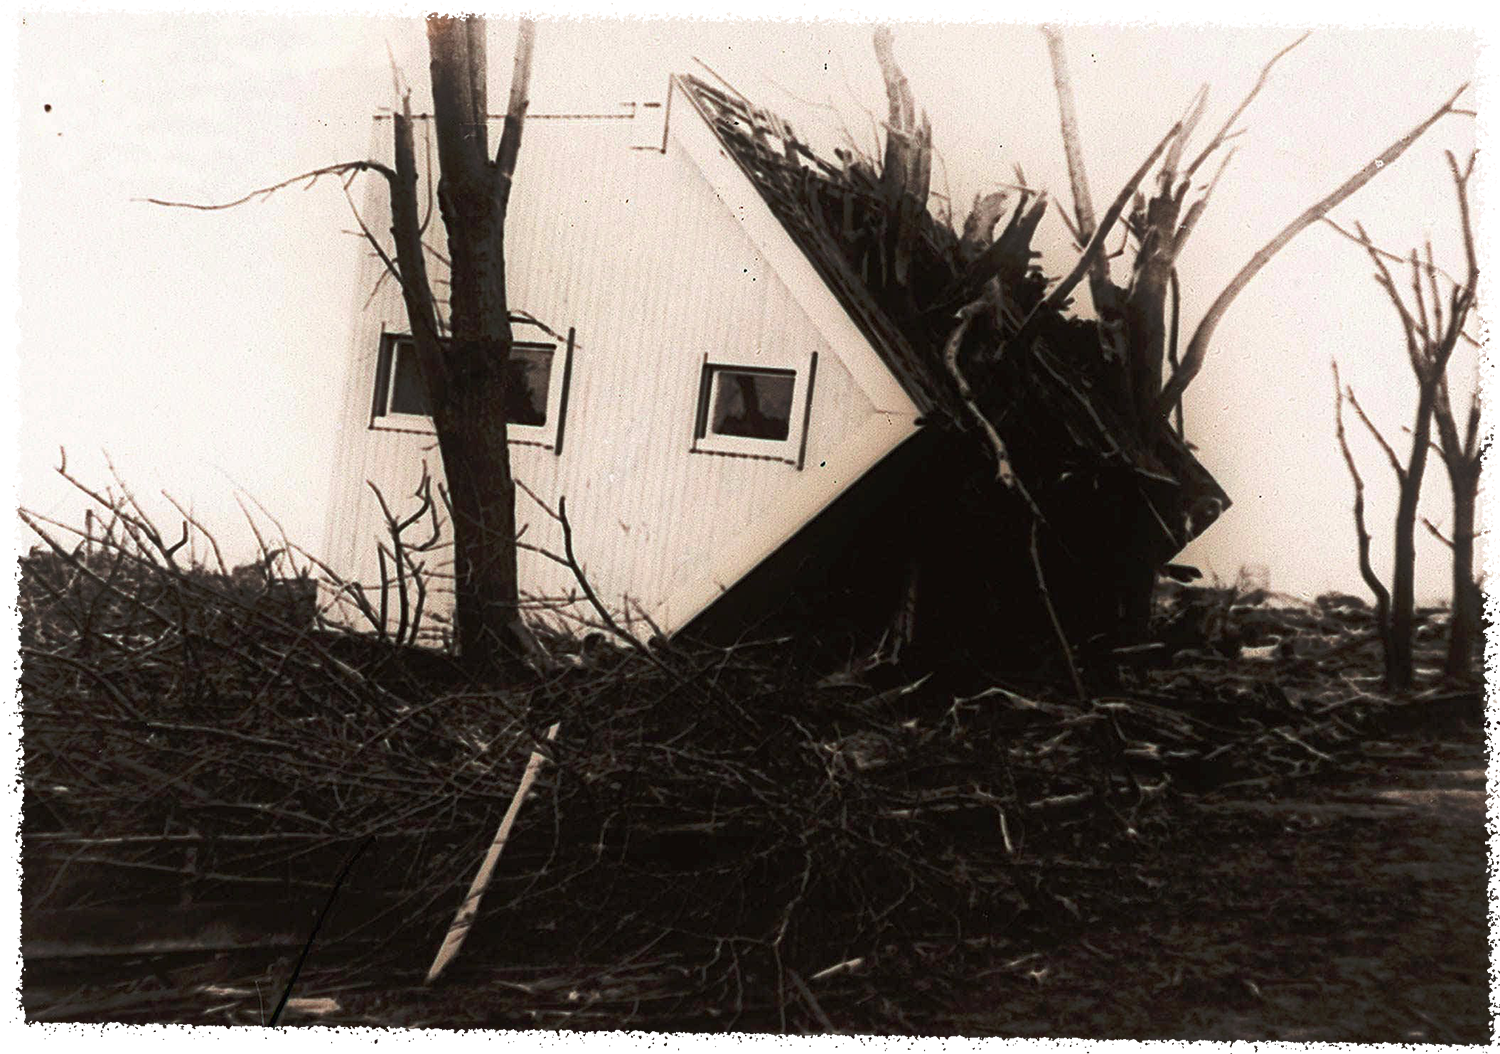 A March 21, 1925 photo of an overturned house that was carried more than 50 feet from its foundation by a tornado at Griffin, Indiana. There were 54 dead and about 200 injured of the town population of 400.